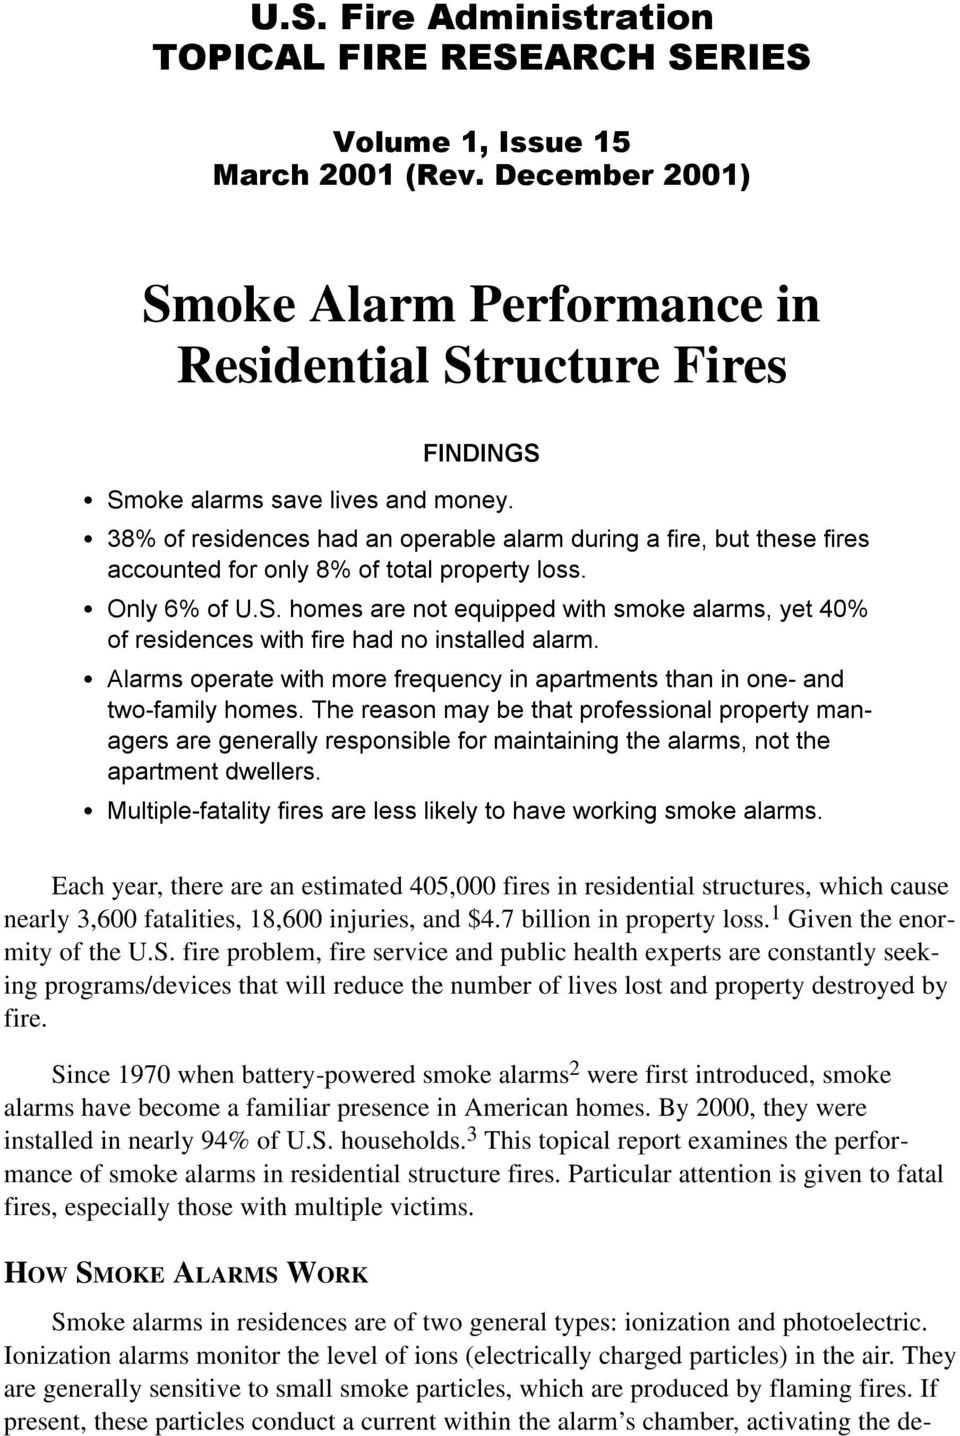 S 3% of residences had an operable alarm during a fire, but these fires accounted for only % of total property loss. S Only 6% of U.S. homes are not equipped with smoke alarms, yet 40% of residences with fire had no installed alarm.